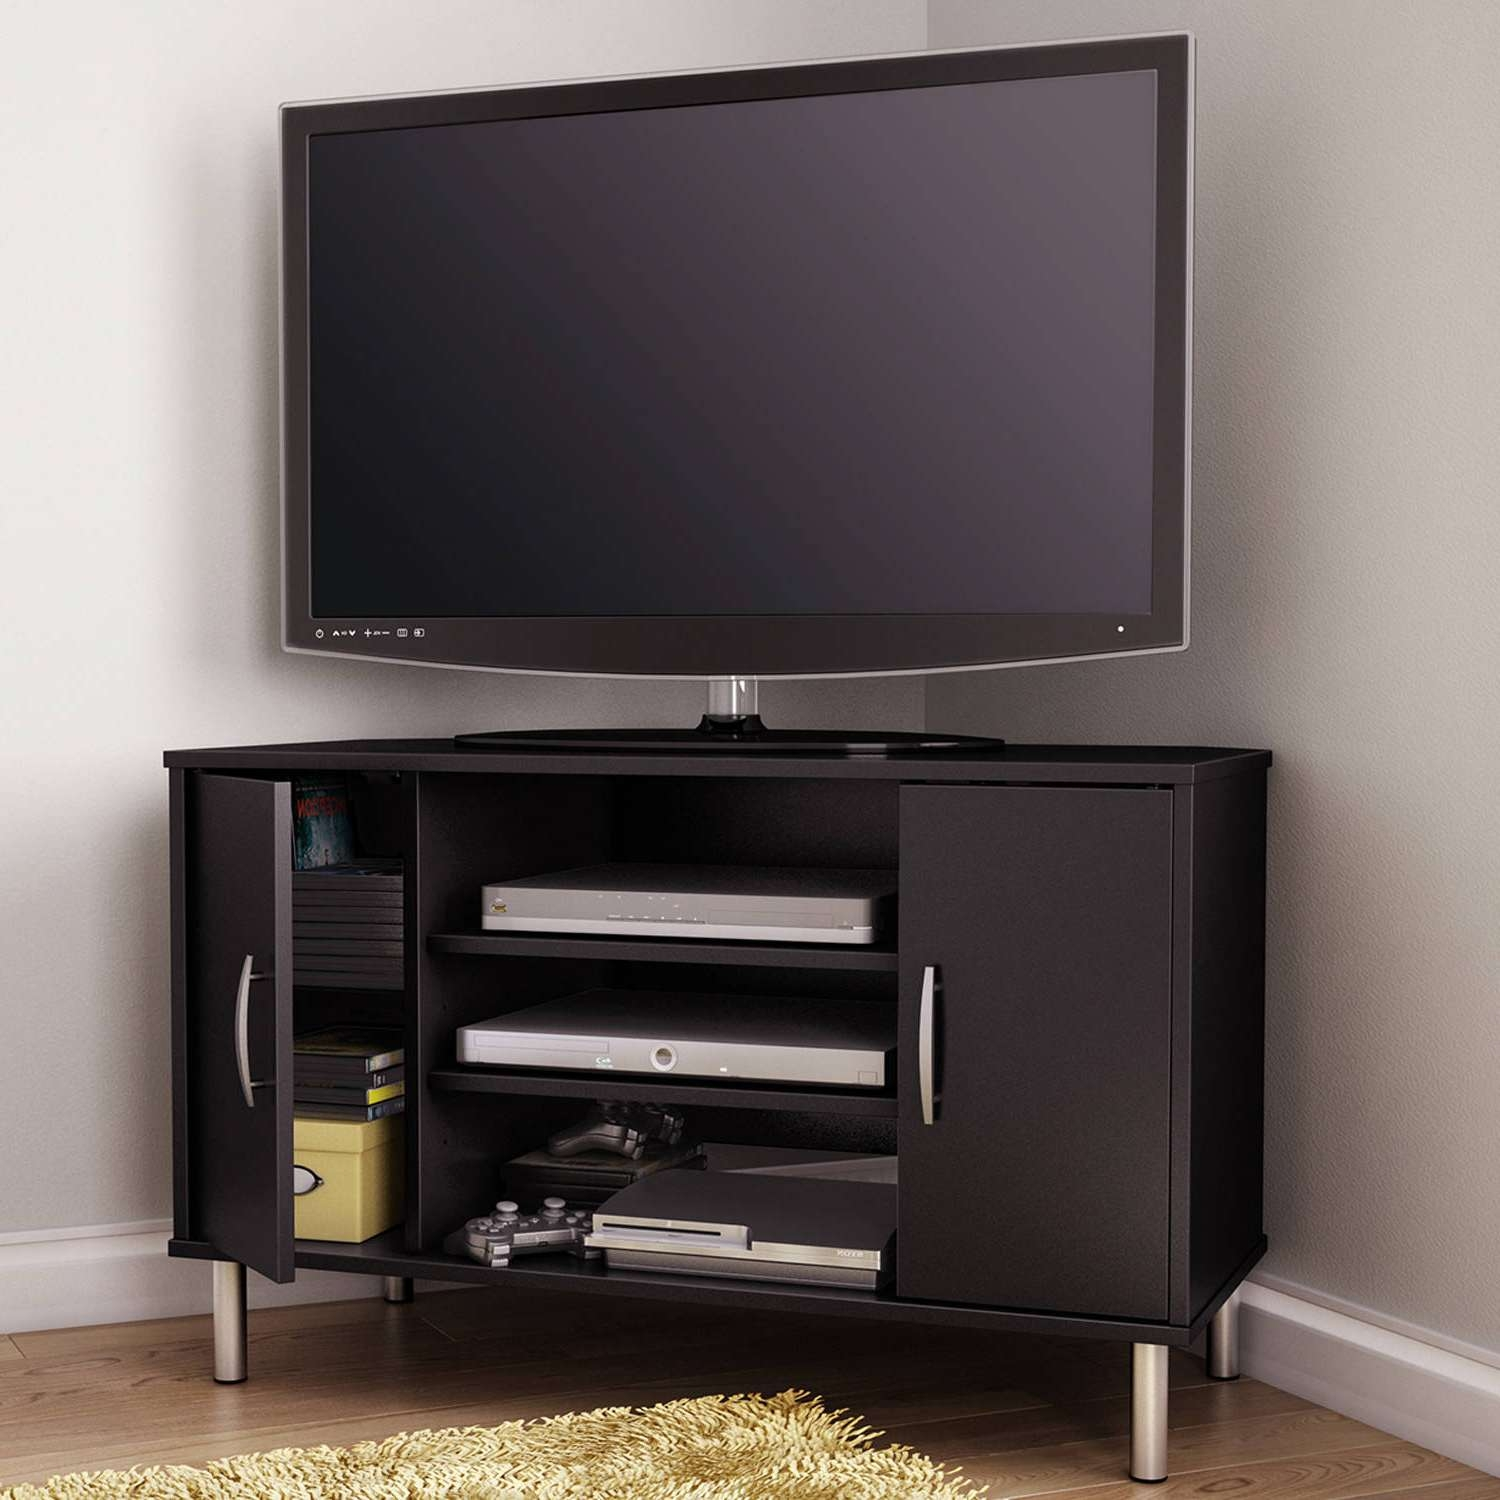 Black Small Tv Stands Tags : 40 Stunning Small Black Tv Stand For Small Black Tv Cabinets (View 18 of 20)